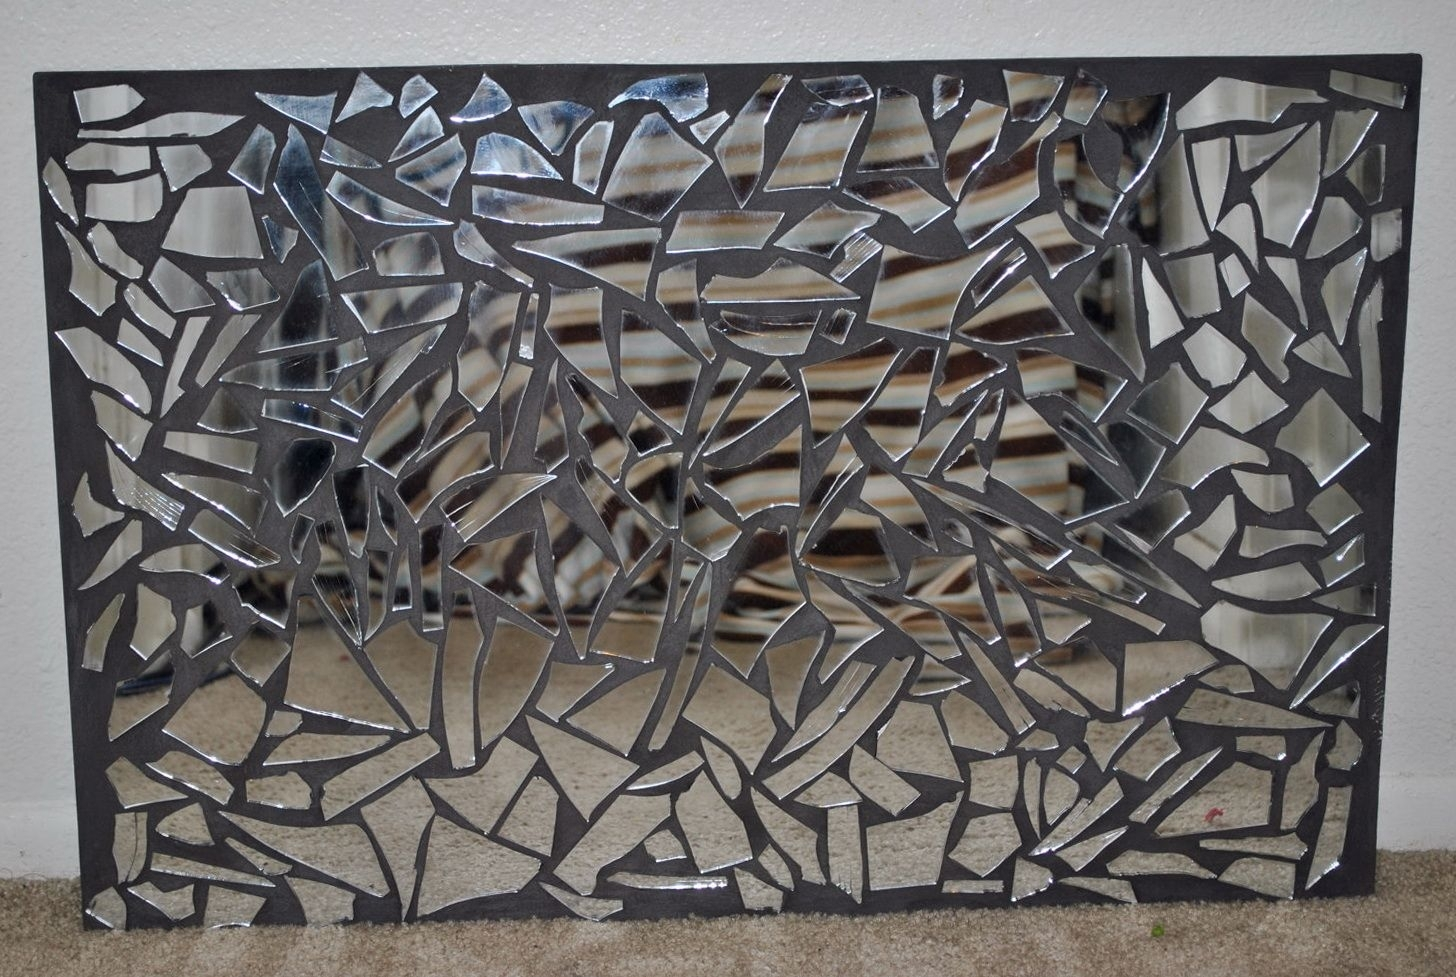 Mirrored Mosaic Wall Art | Home Decor | Pinterest | Mosaic Wall Art Pertaining To Most Up To Date Mirror Mosaic Wall Art (View 4 of 20)